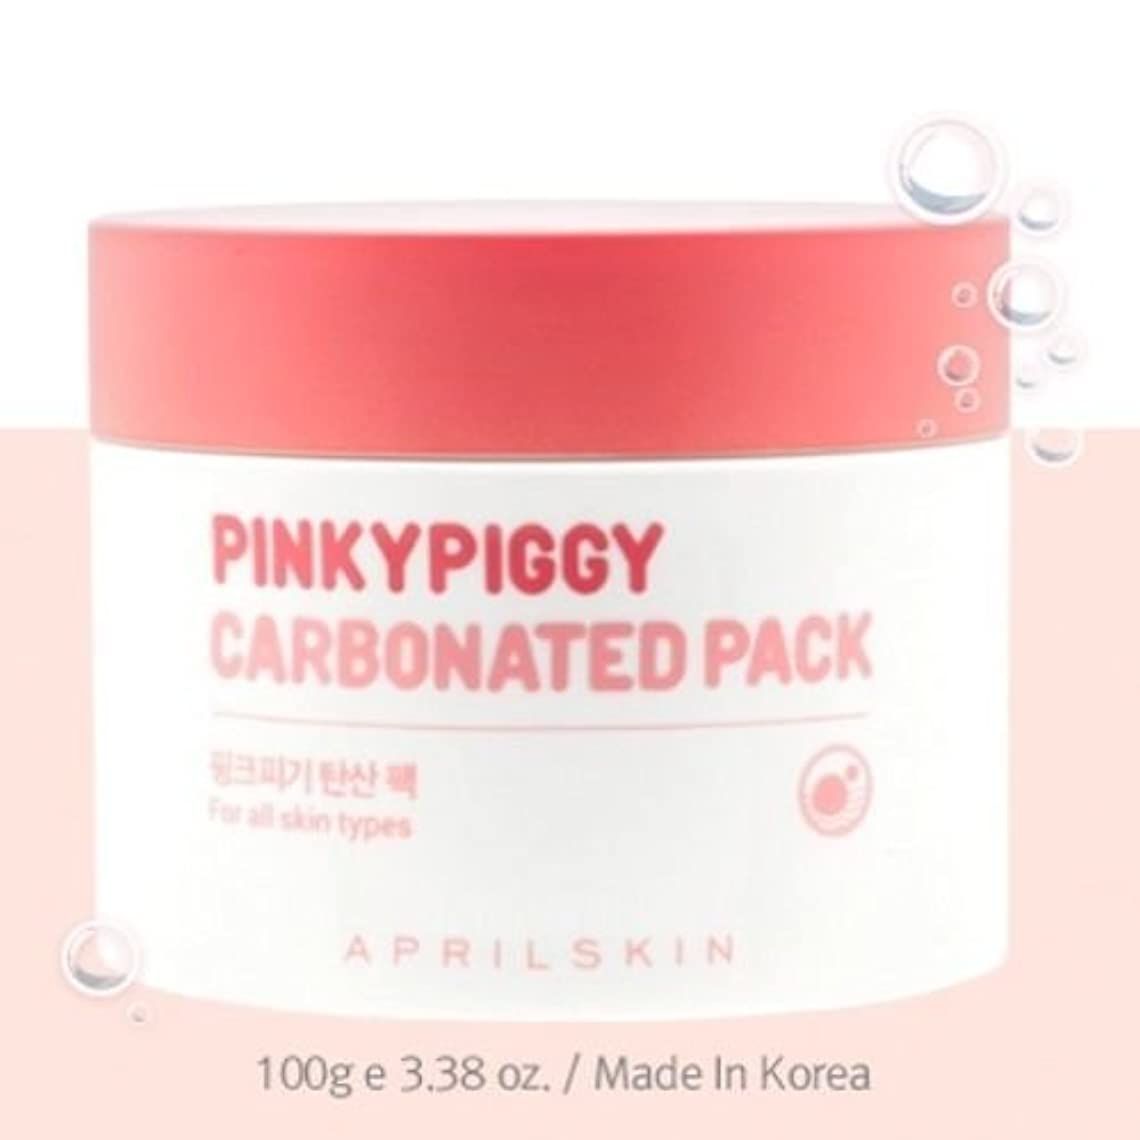 けがをする壮大チャンピオンApril Skin Pinky Piggy Carbonated Pack 100g(3.38oz)/100% Authentic Direct from Korea [並行輸入品]